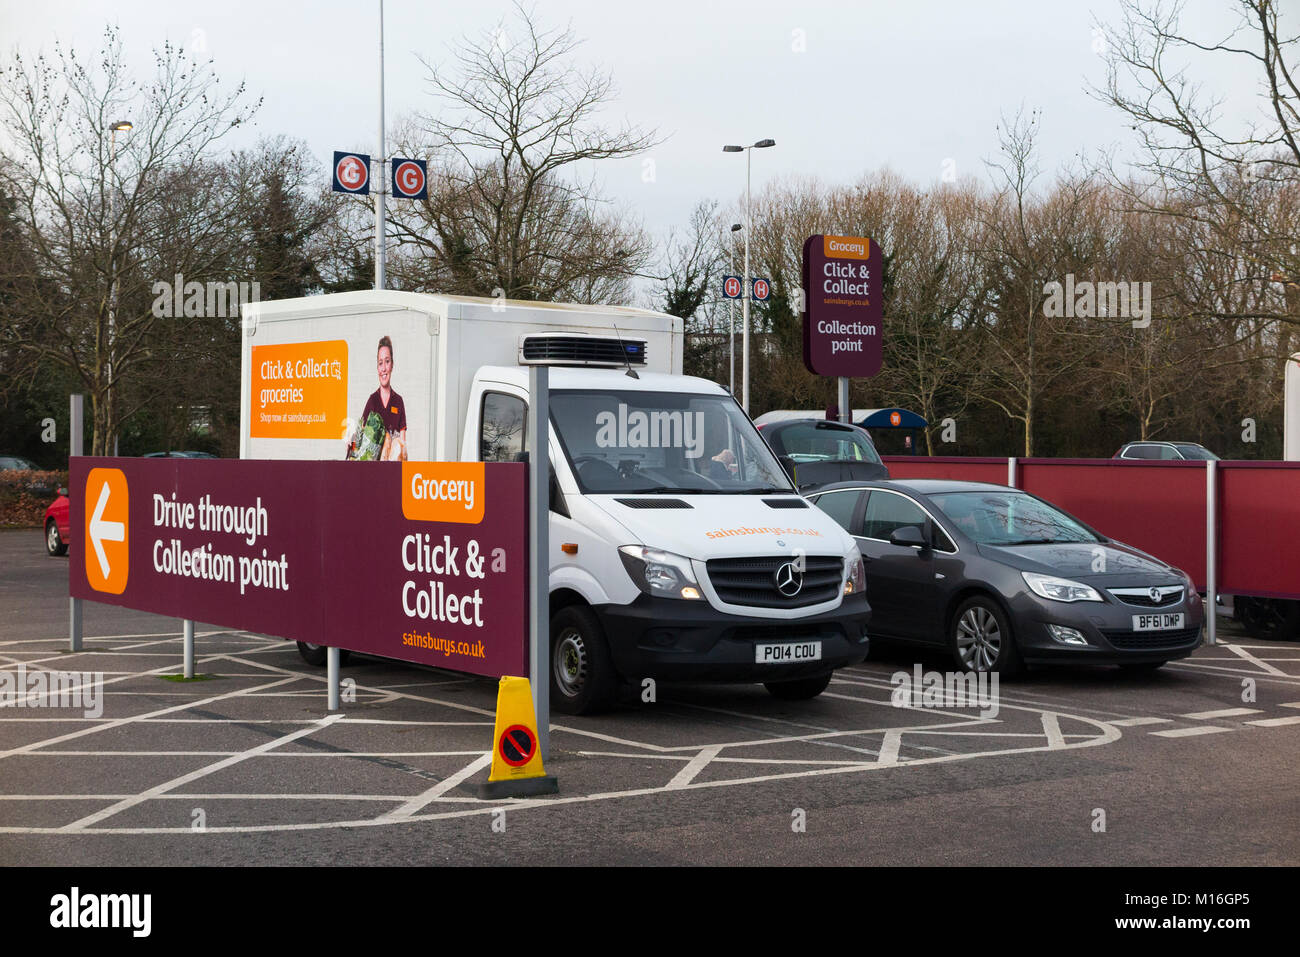 sainsburys click and collect drive through collection point for stock photo 172863213 alamy. Black Bedroom Furniture Sets. Home Design Ideas